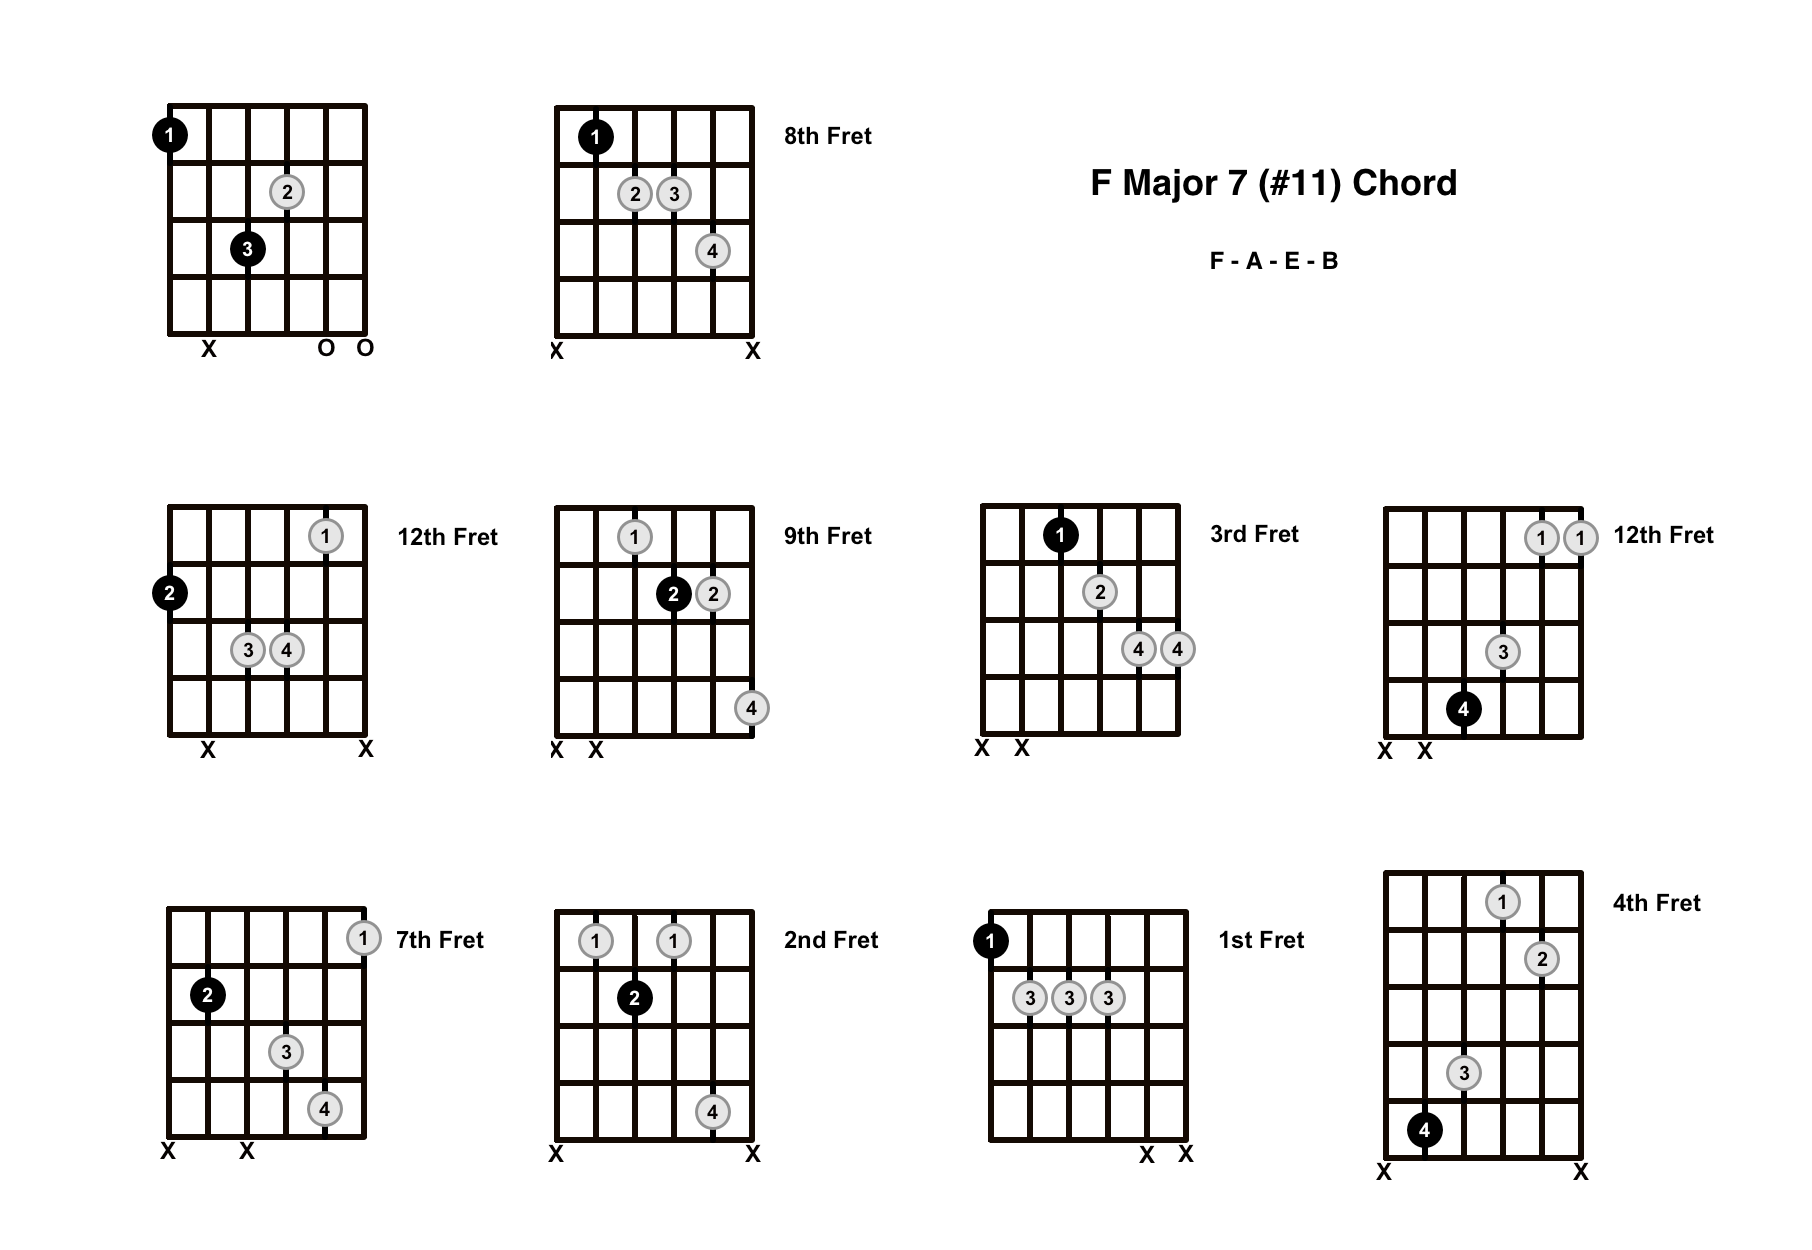 Fmaj7#11 Chord On The Guitar (F Major 7 #11) – Diagrams, Finger Positions and Theory